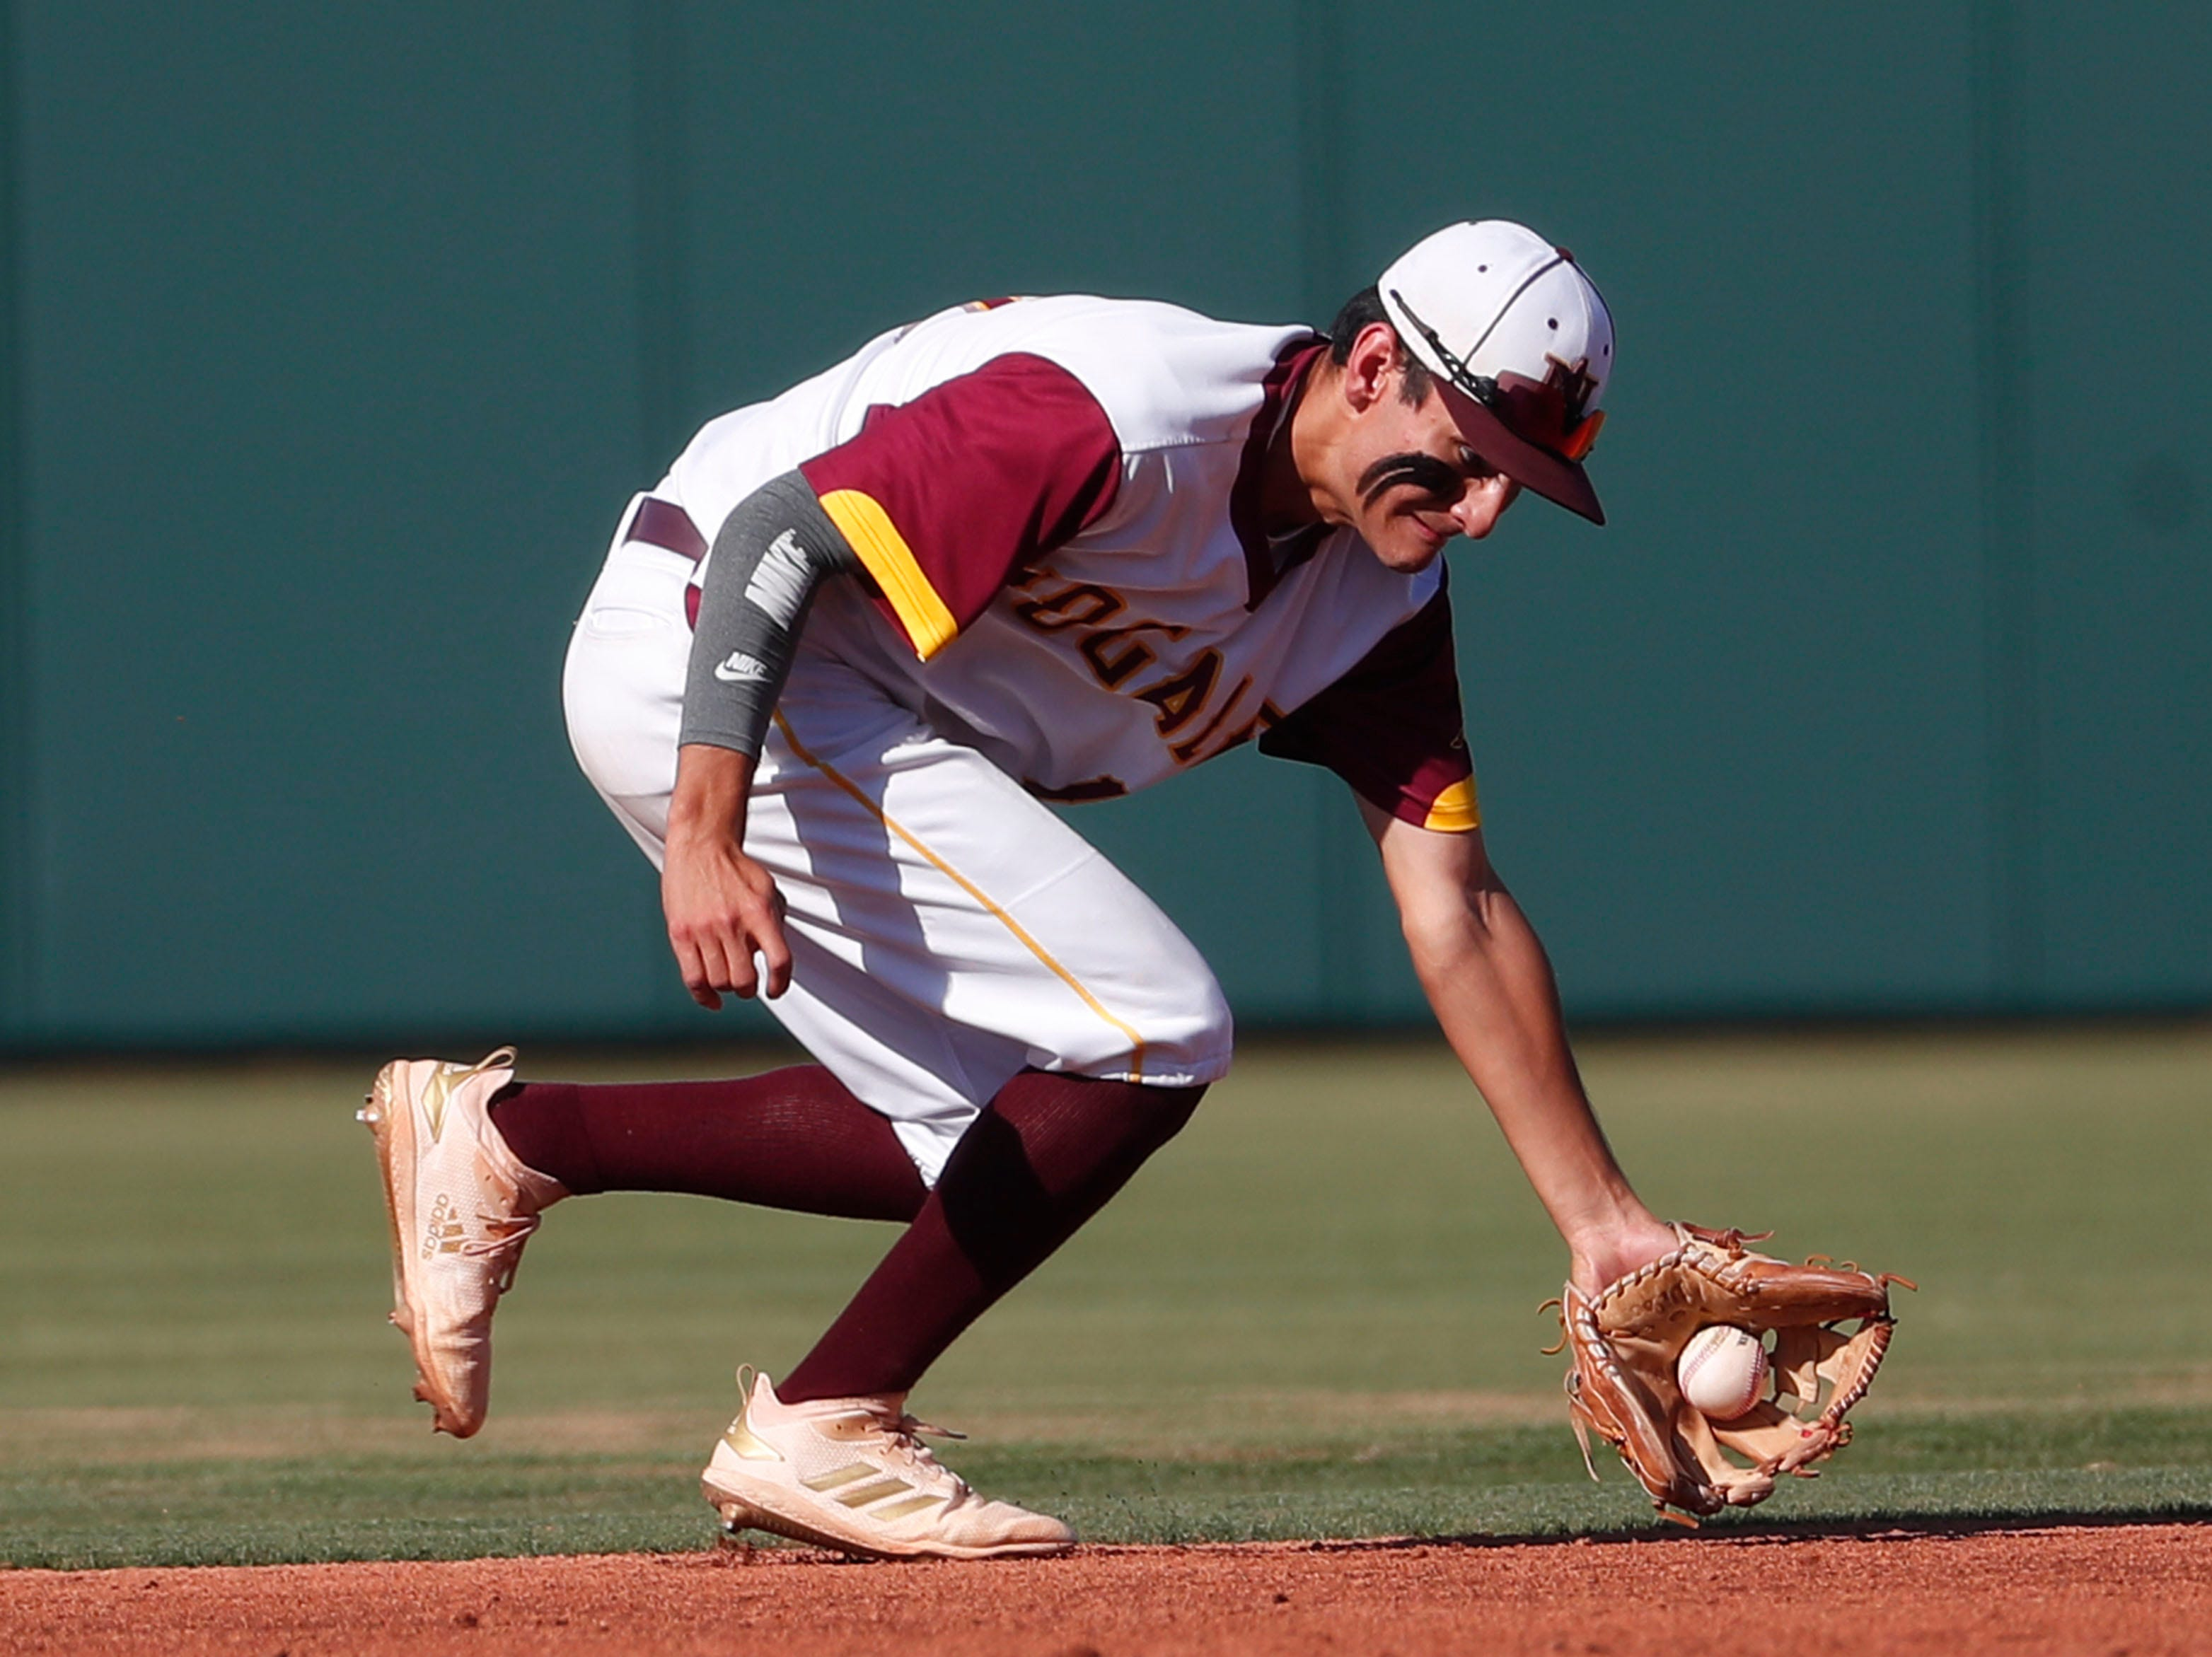 Nogales shortstop Jorge Bojorquez (10) fields a ground ball against Horizon during the 5A State Baseball Championship in Tempe, Ariz. May 14, 2019.